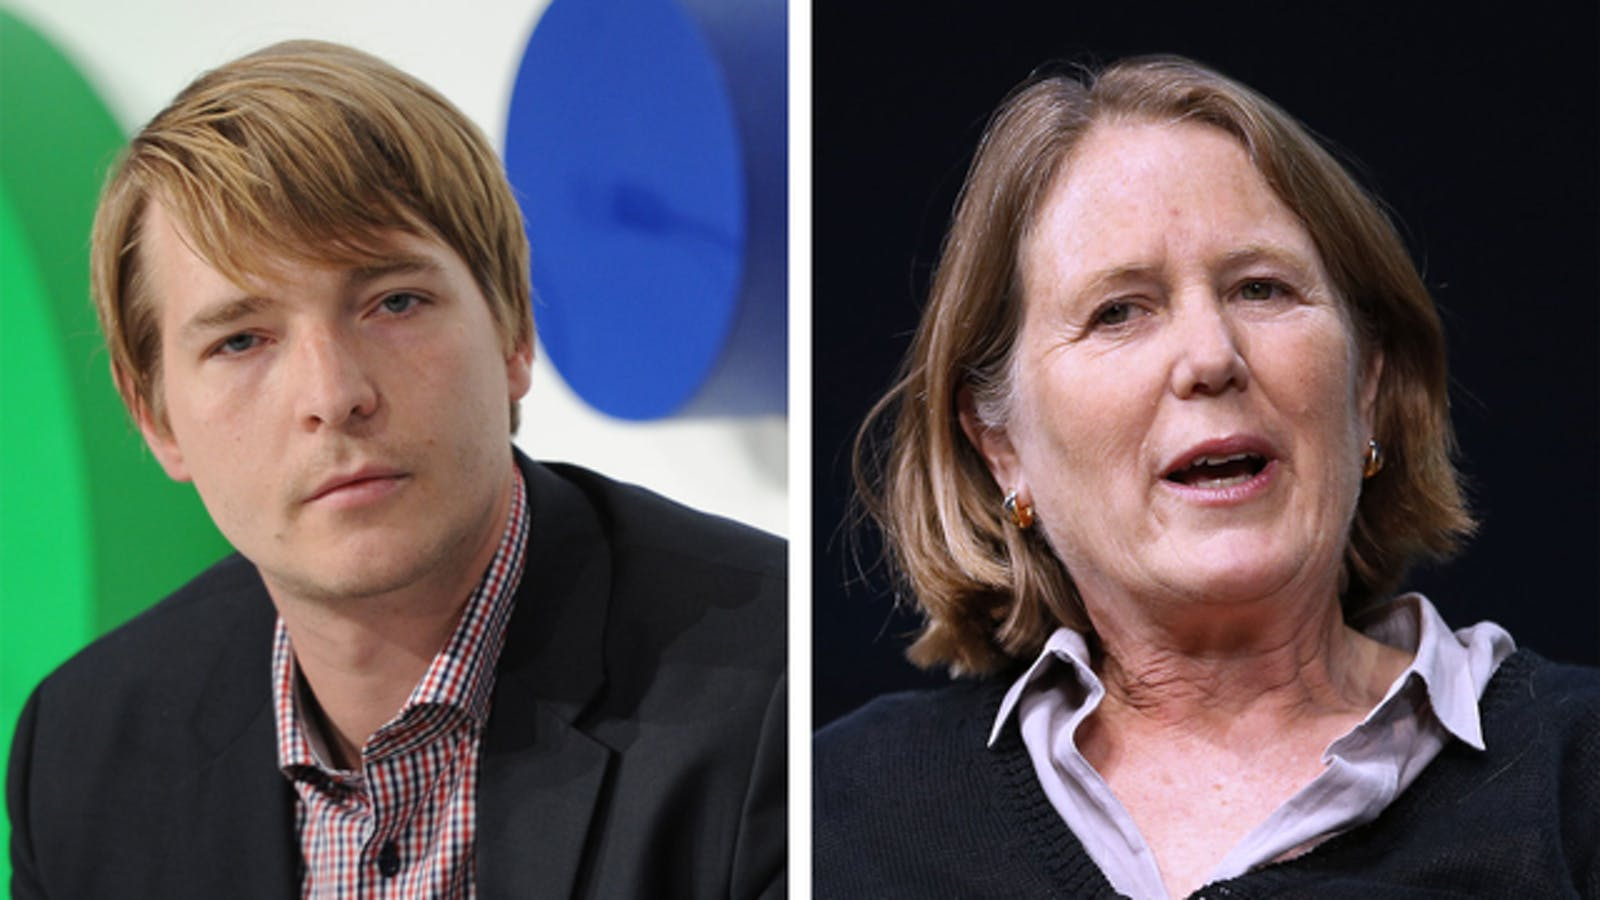 Mesosphere CEO Florian Leibert and Google Cloud chief Diane Greene. Photos: AP and Bloomberg